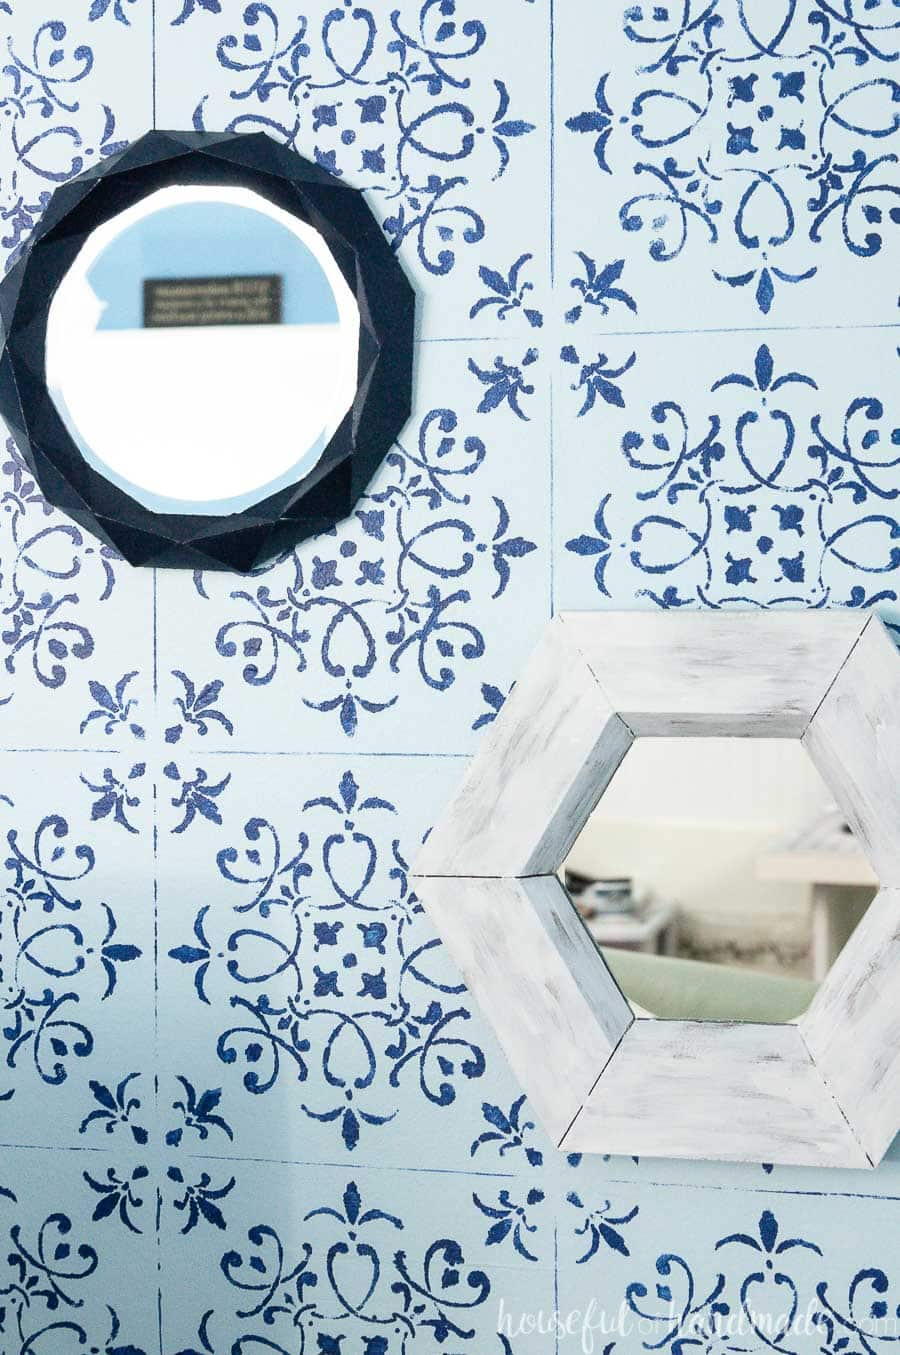 Close up of the small decorative mirrors on a blue and navy stenciled wall.